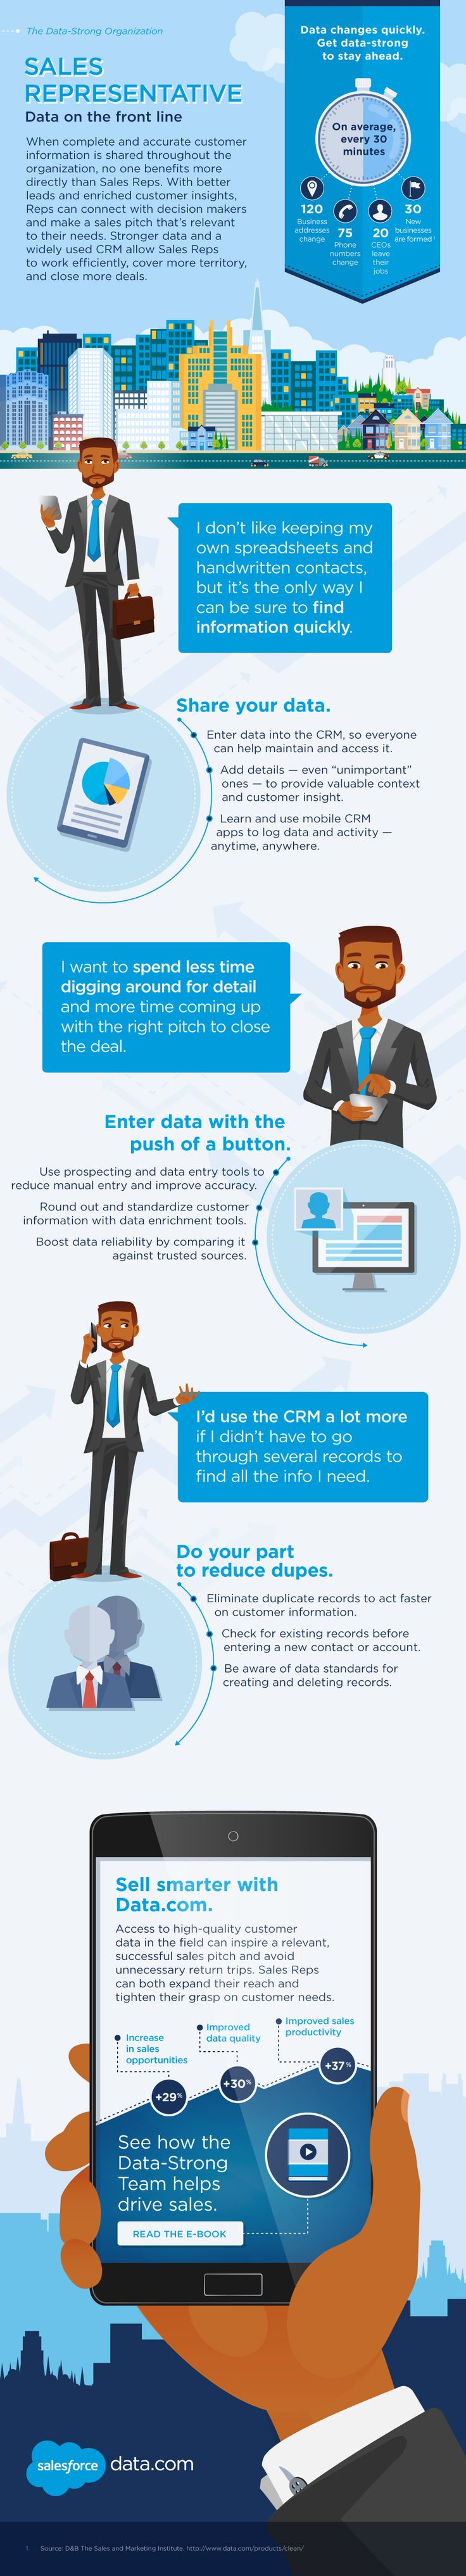 Sales Representative Data on the Front Line #infographic #Sales #Marketing